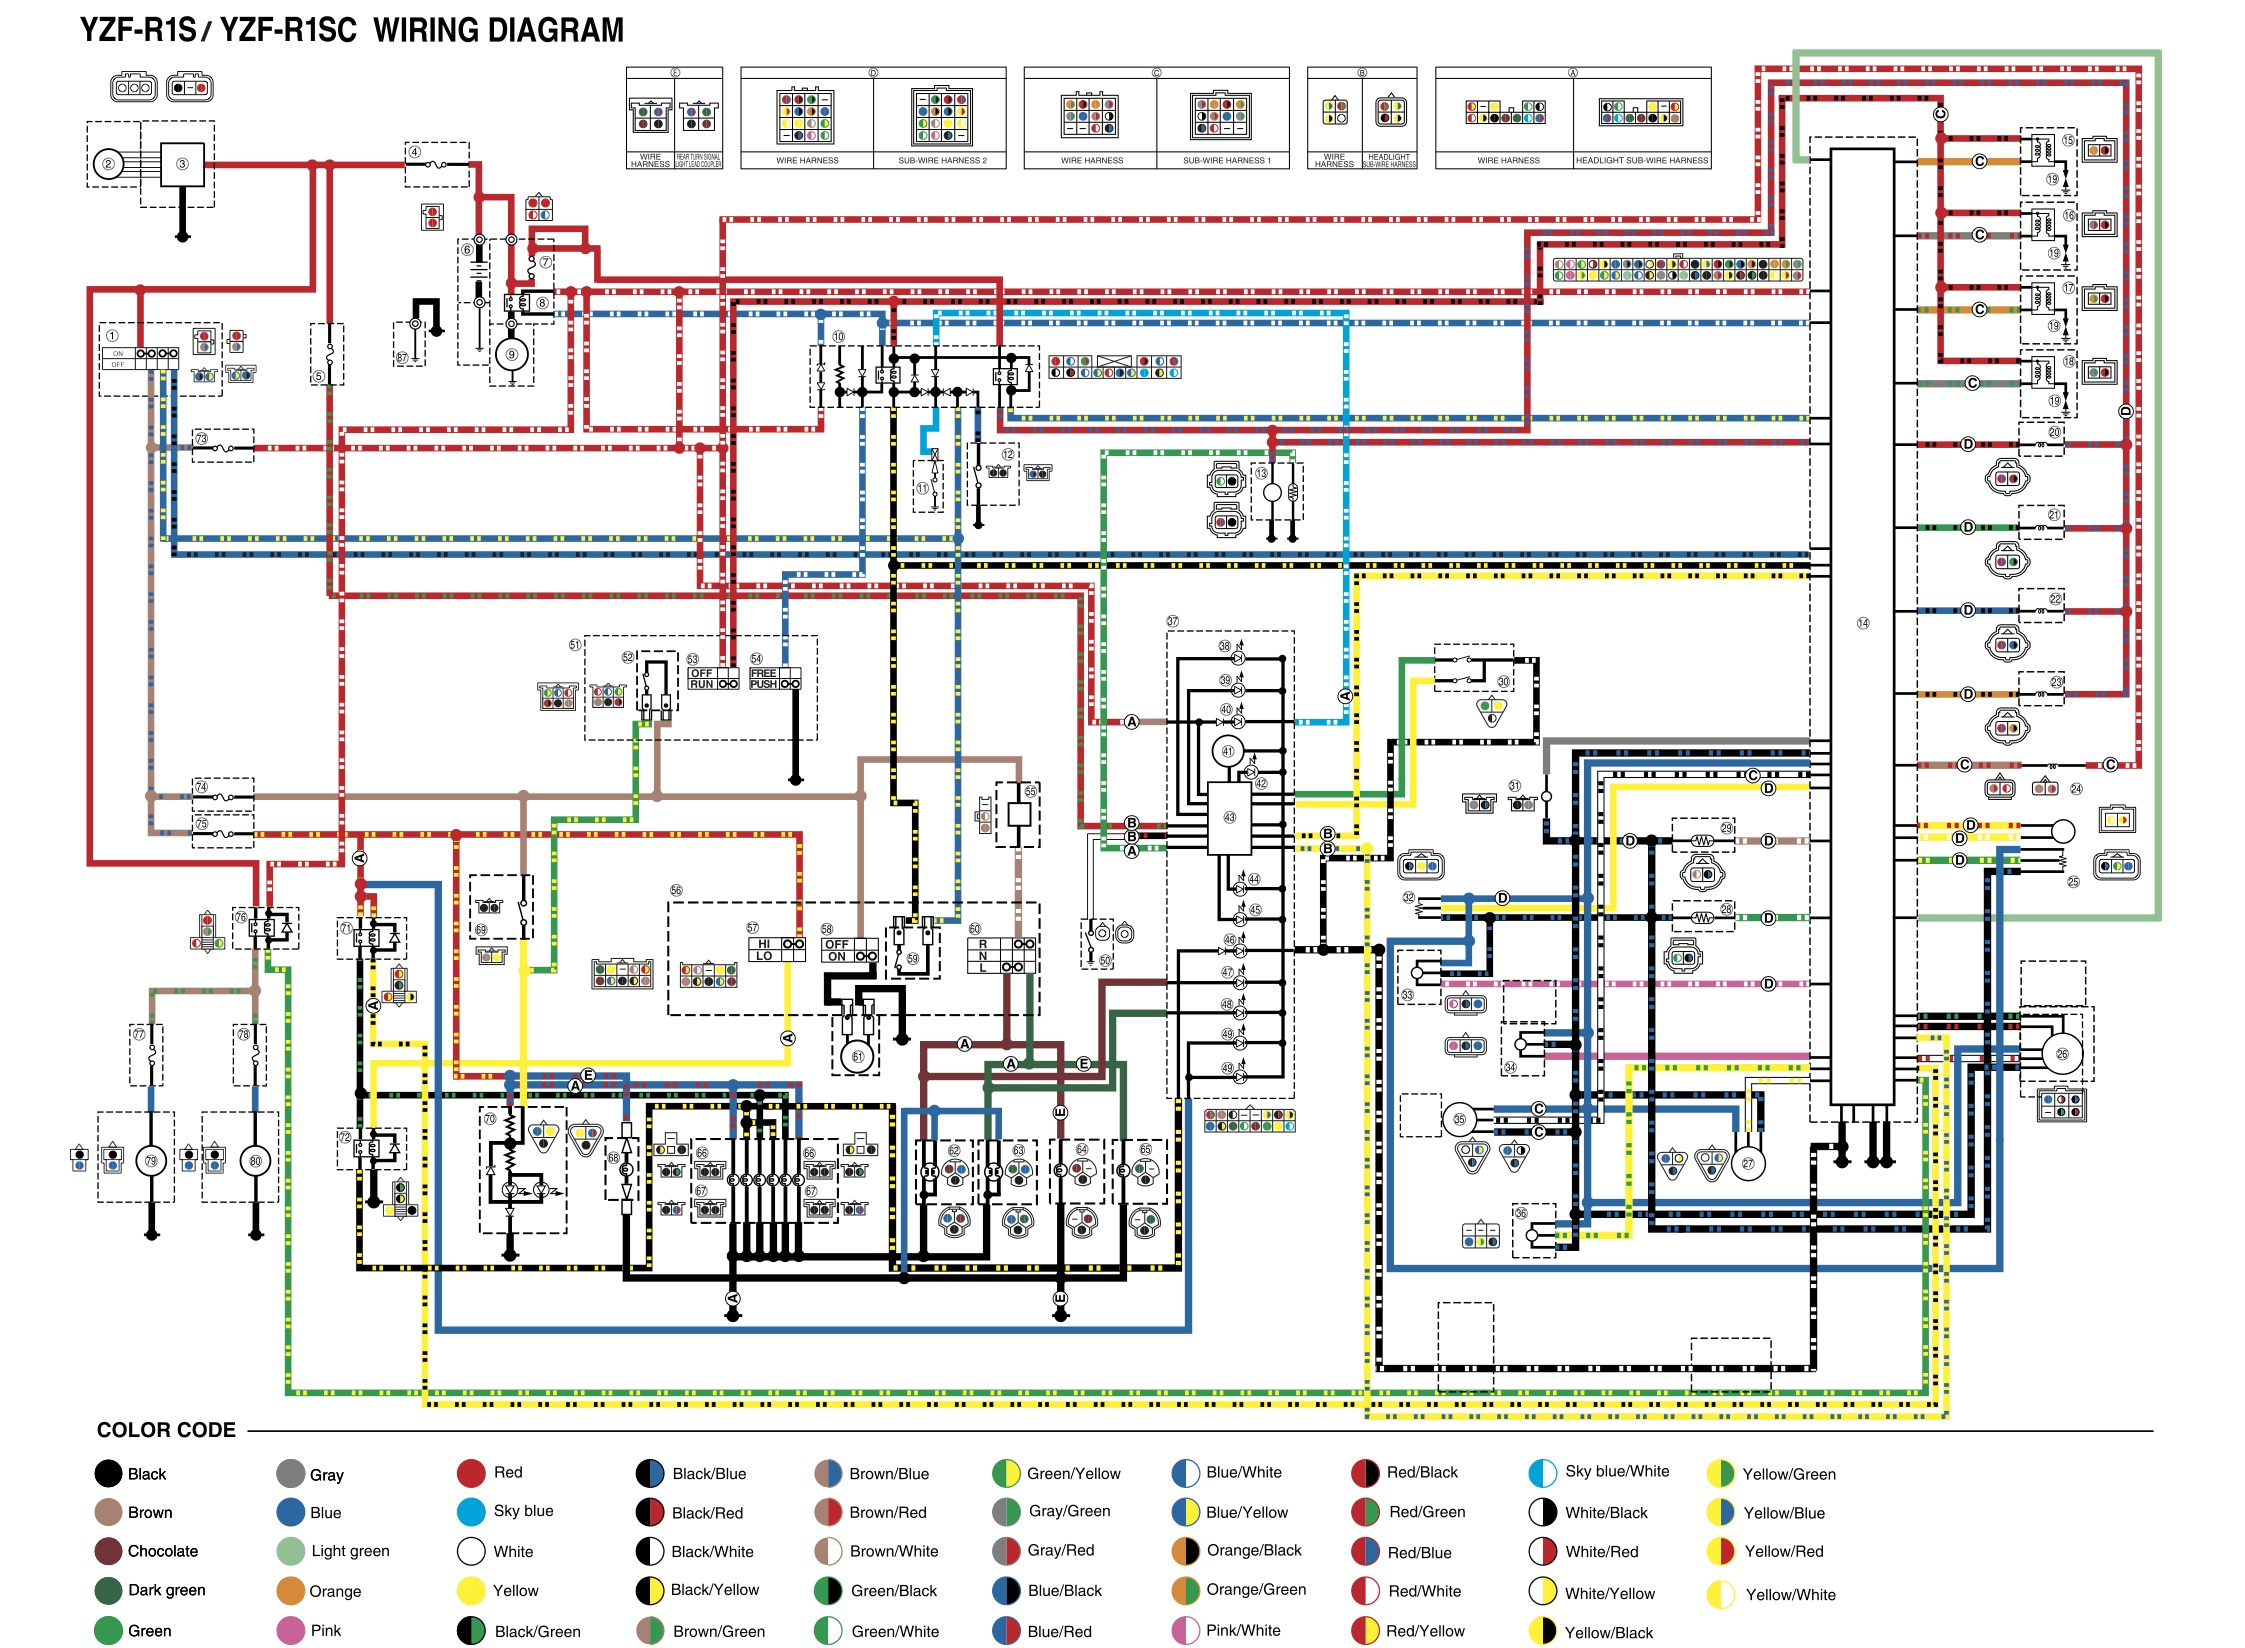 yamaha r6 fuse box diagram wiring diagram mustang fuse box diagram 2003 yamaha r6 fuse box 5 12 danishfashion mode de \\u20222003 yamaha r6 fuse box